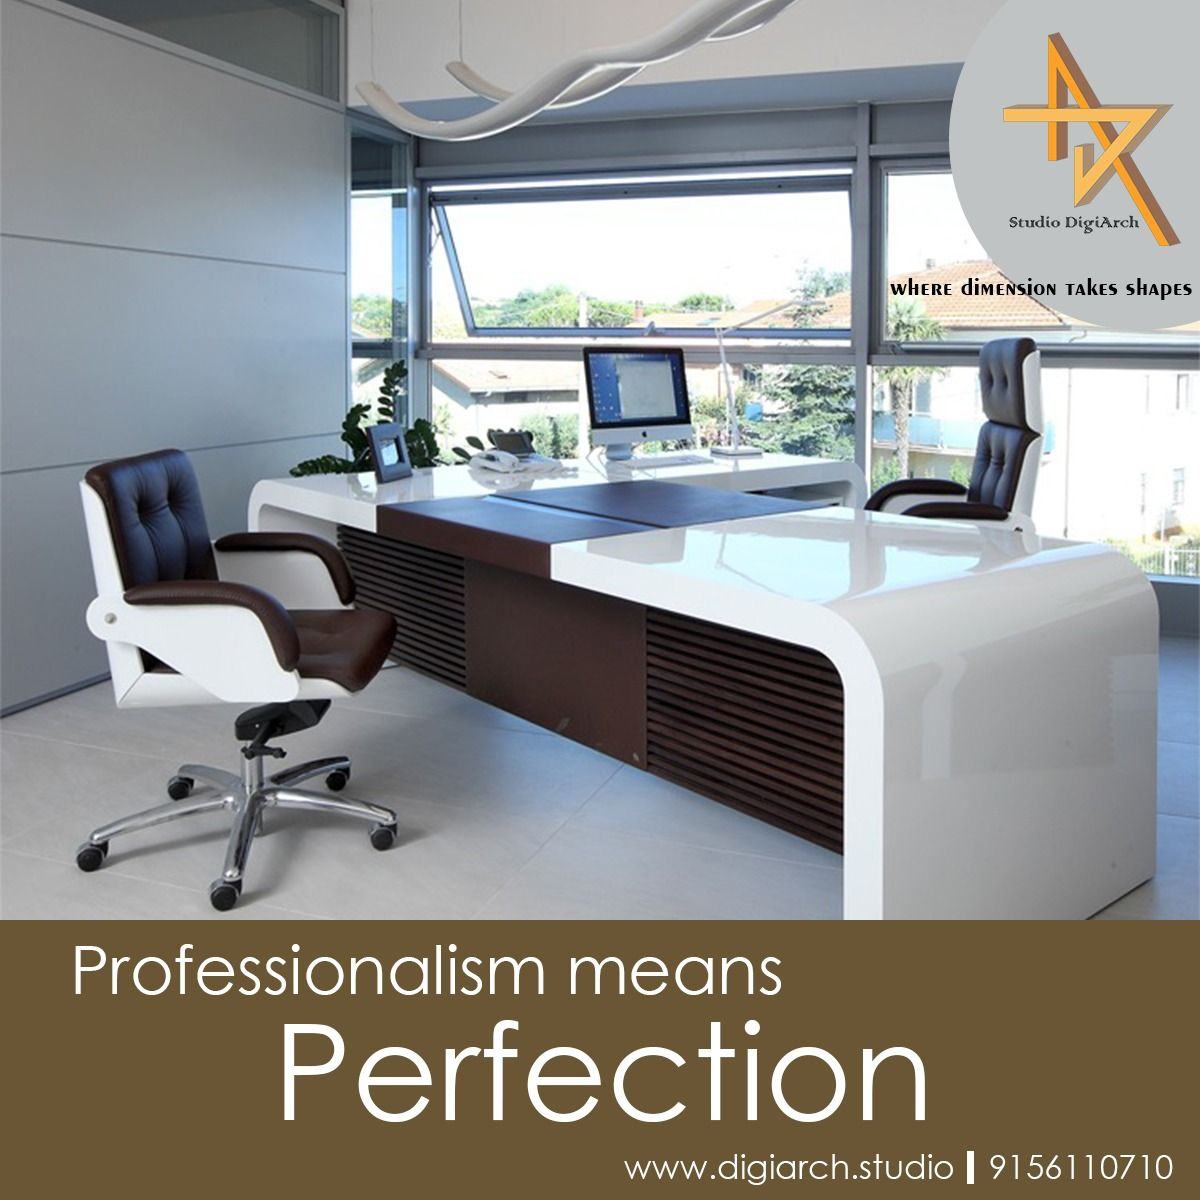 Home Officeinterior Design Ideas: 'Professionalism Means Perfection. 9156110710